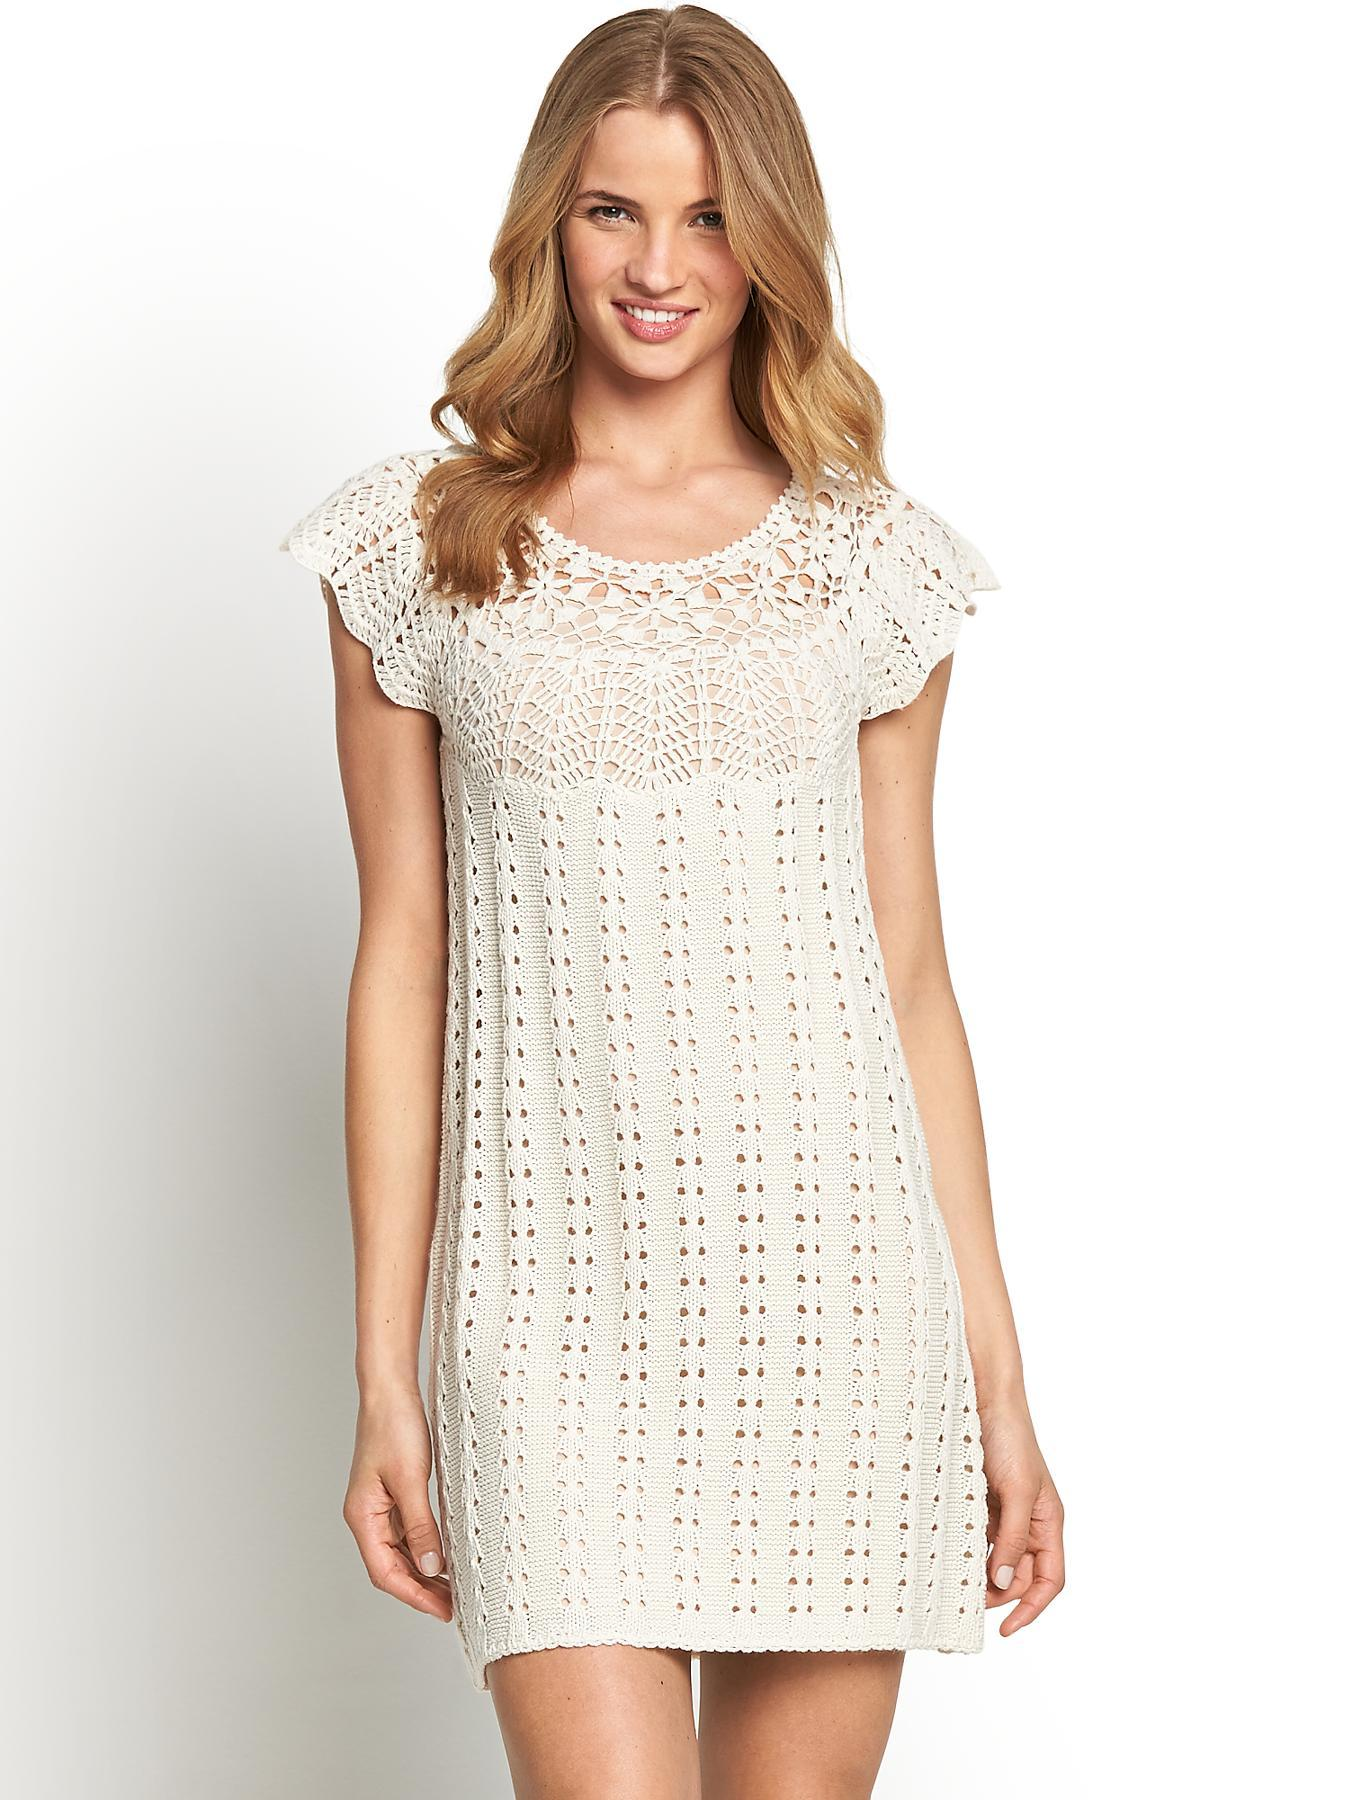 Crochet Knit Unlined Dress, Black,Cream